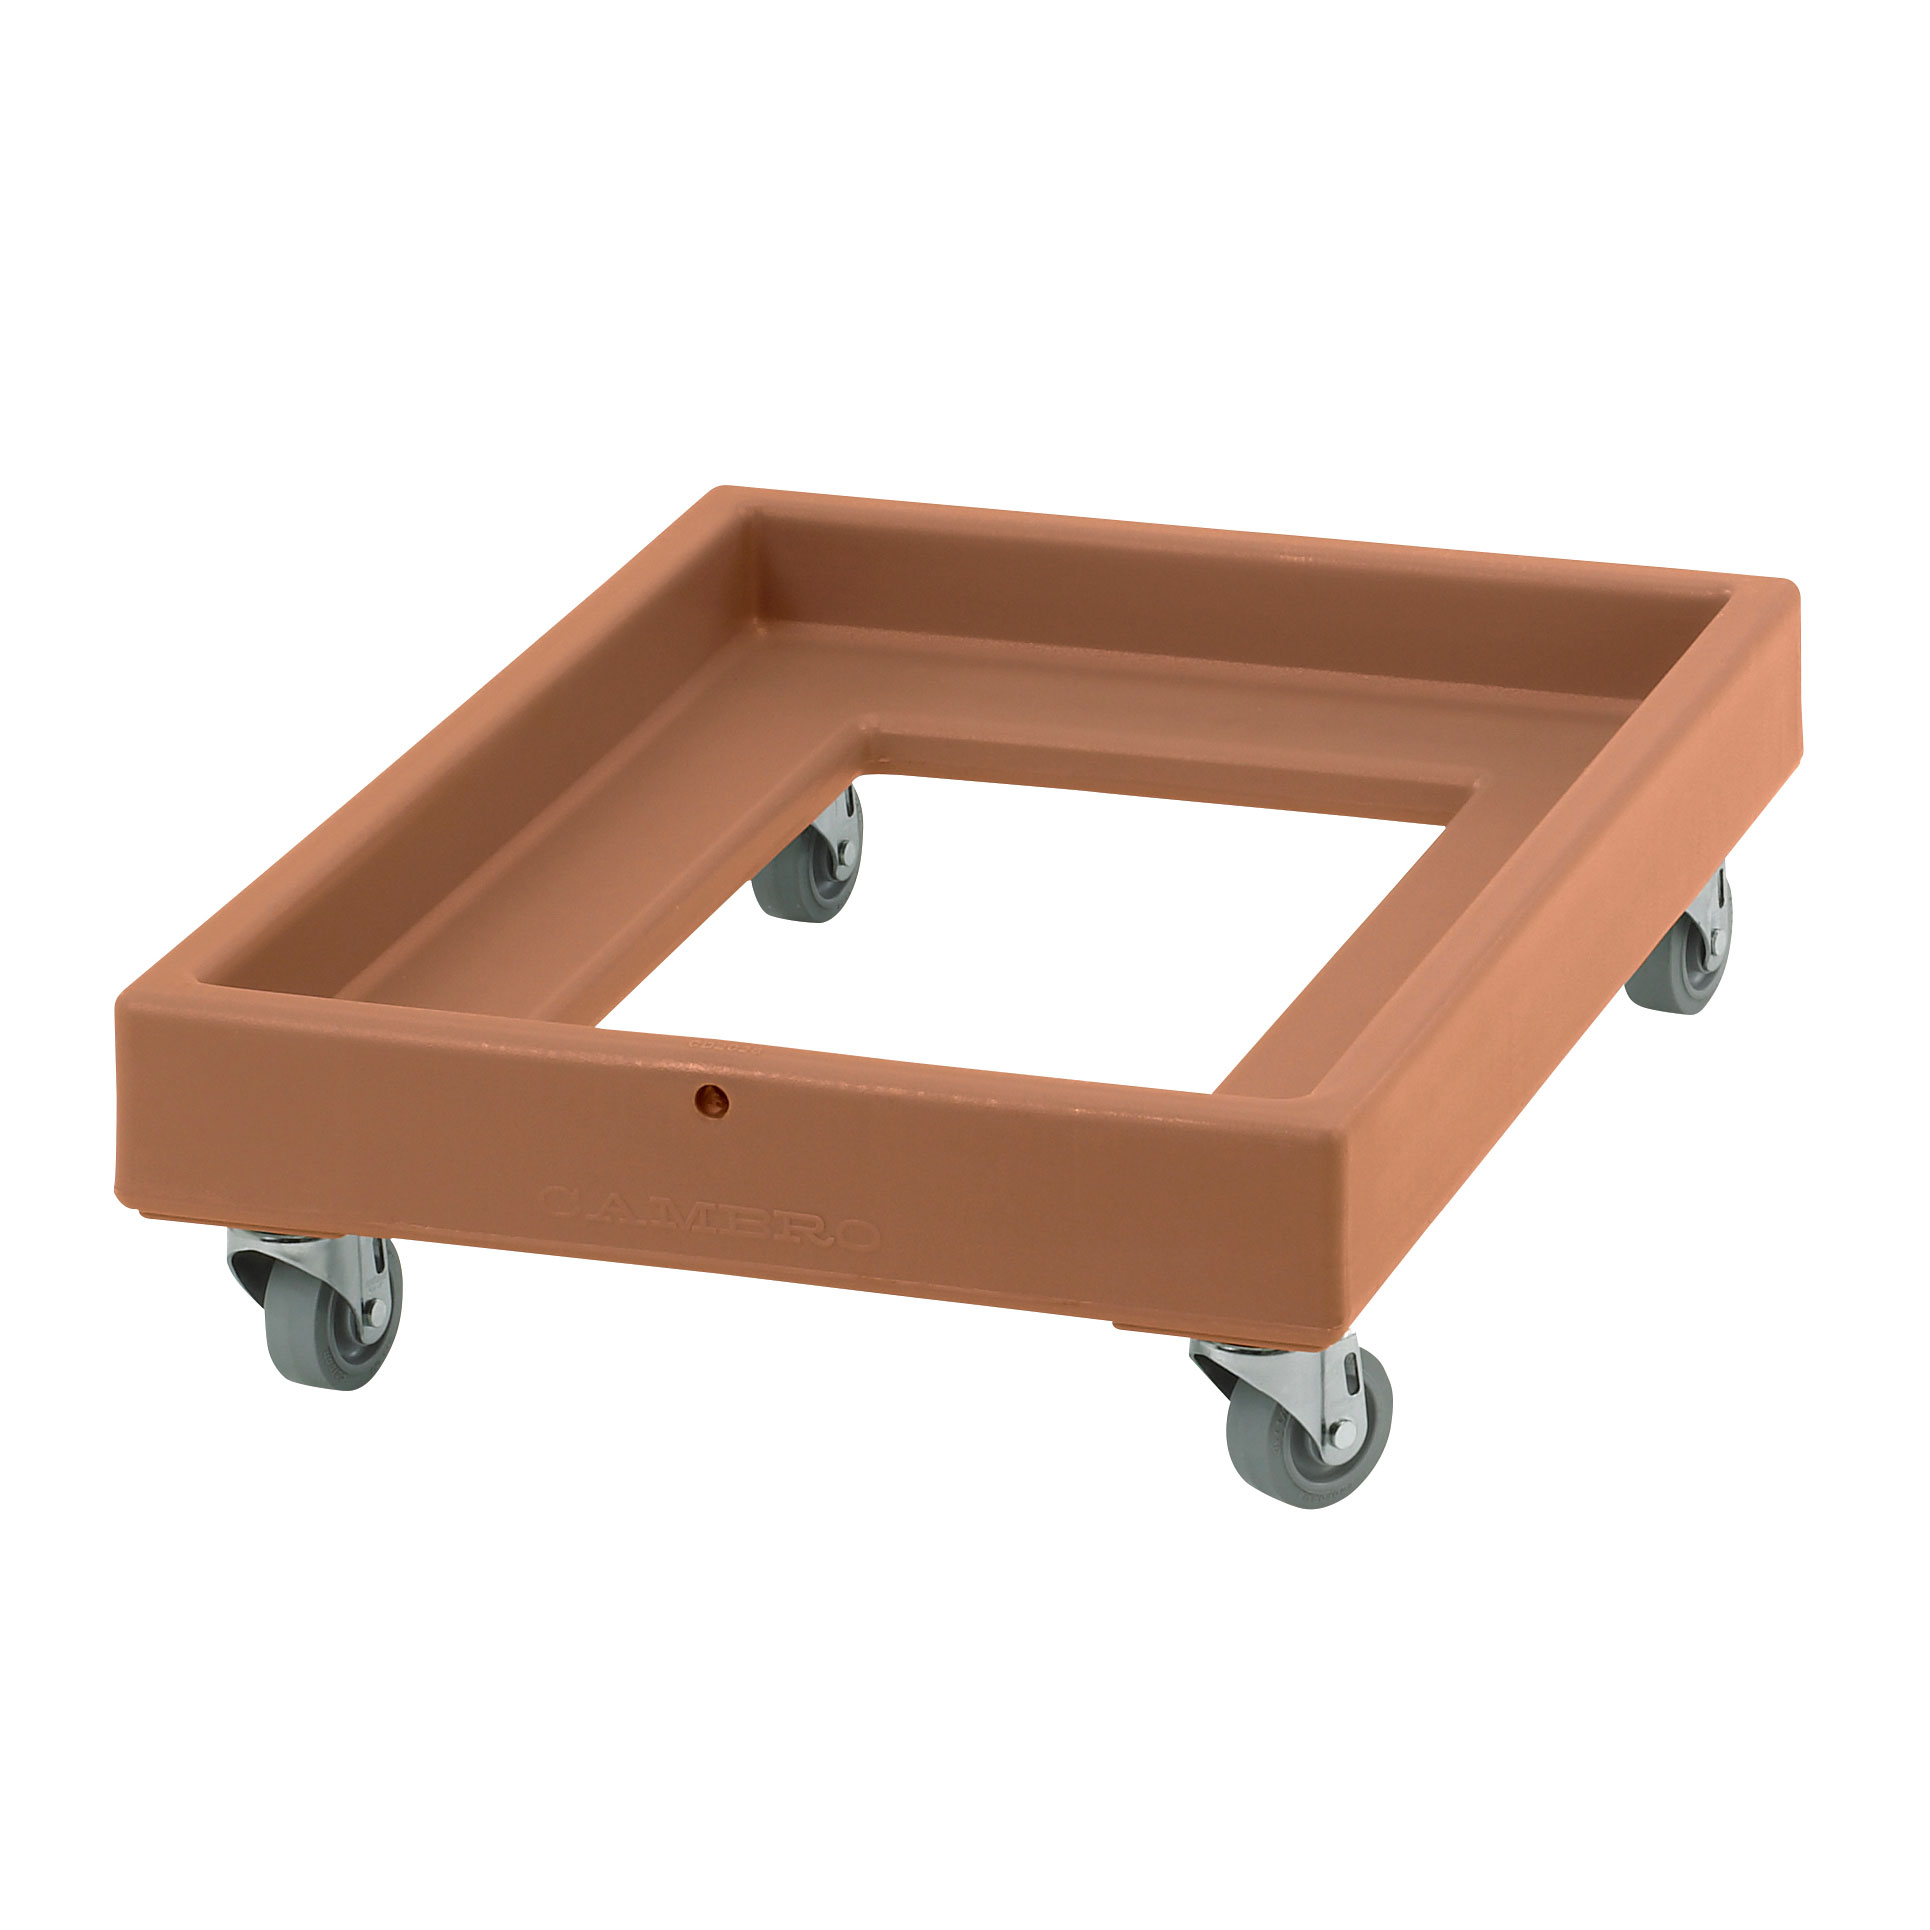 Cambro CD2028157 food carrier dolly